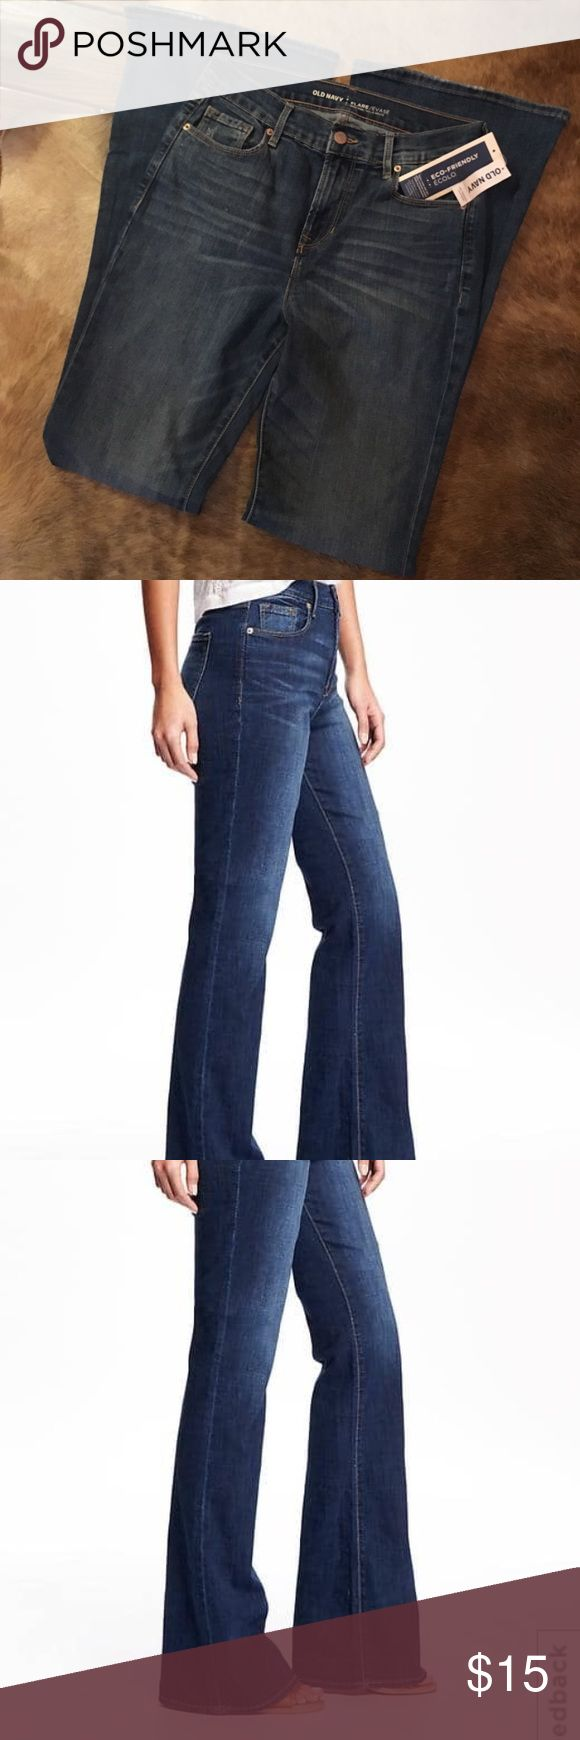 Old Navy high rise flare jeans NWT Old Navy high waisted flare blue jeans.  Love that 70s flare!!!! Old Navy Jeans Flare & Wide Leg